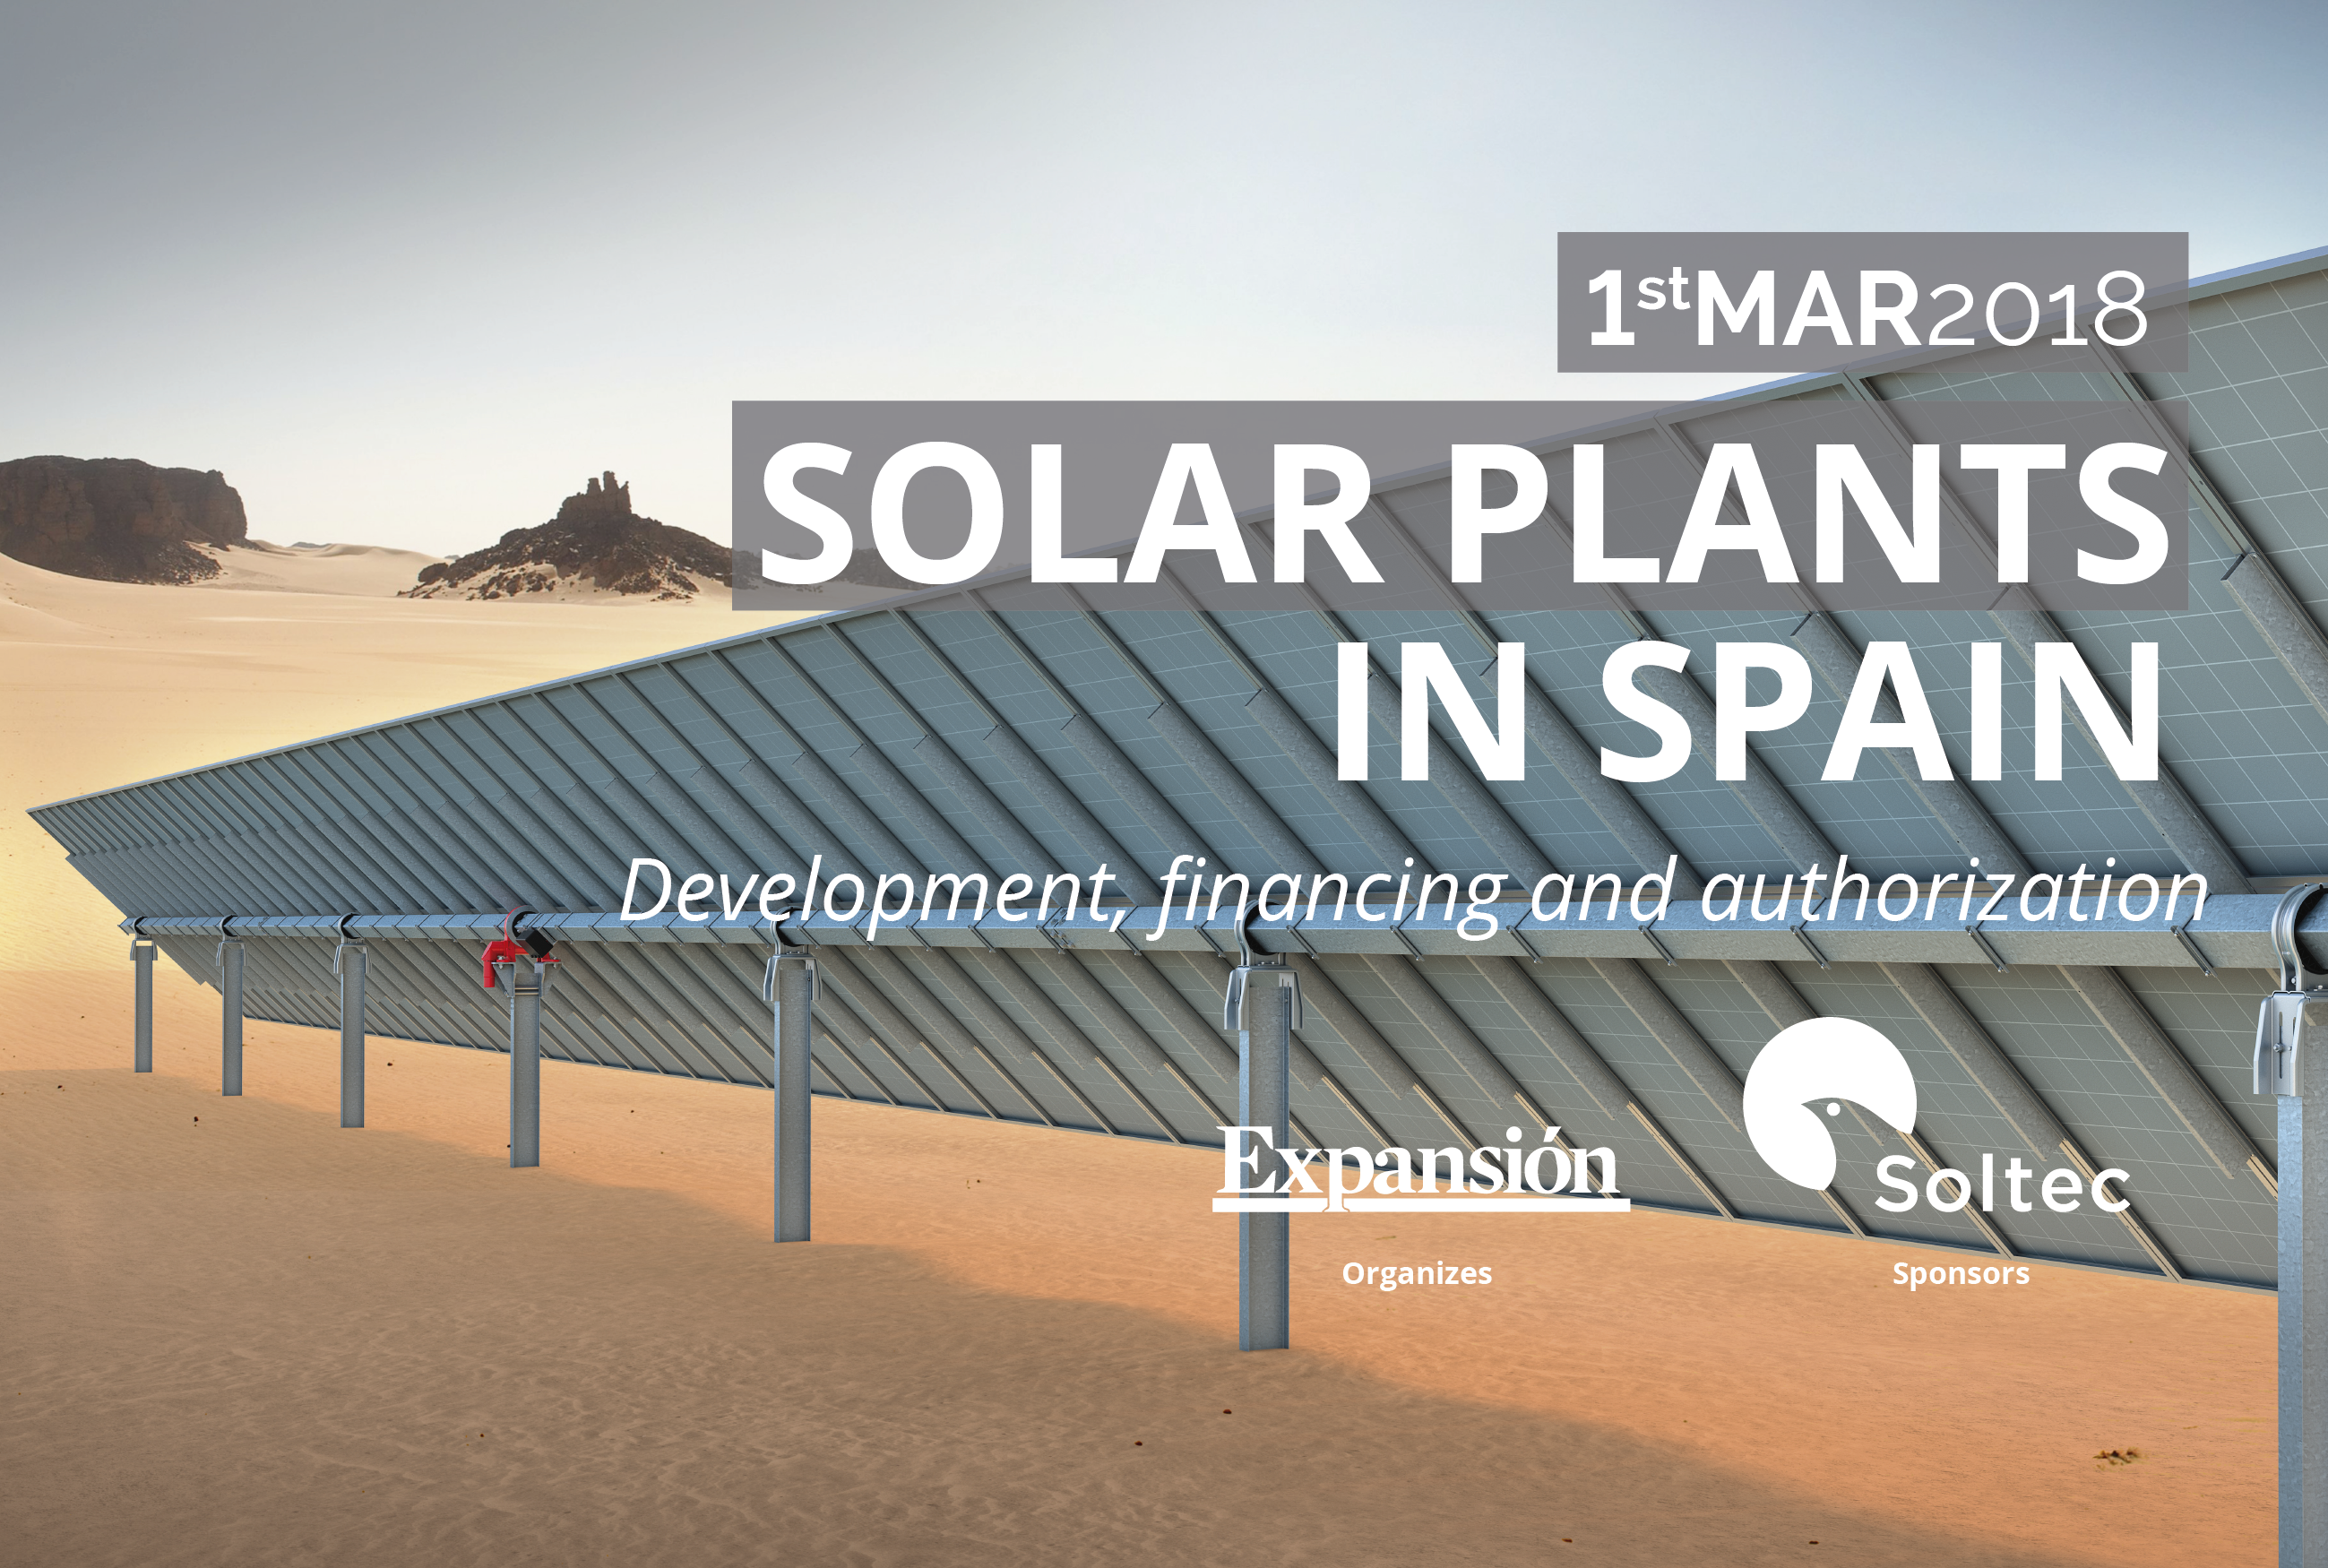 Soltec sponsors 'Solar Plants in Spain' congress